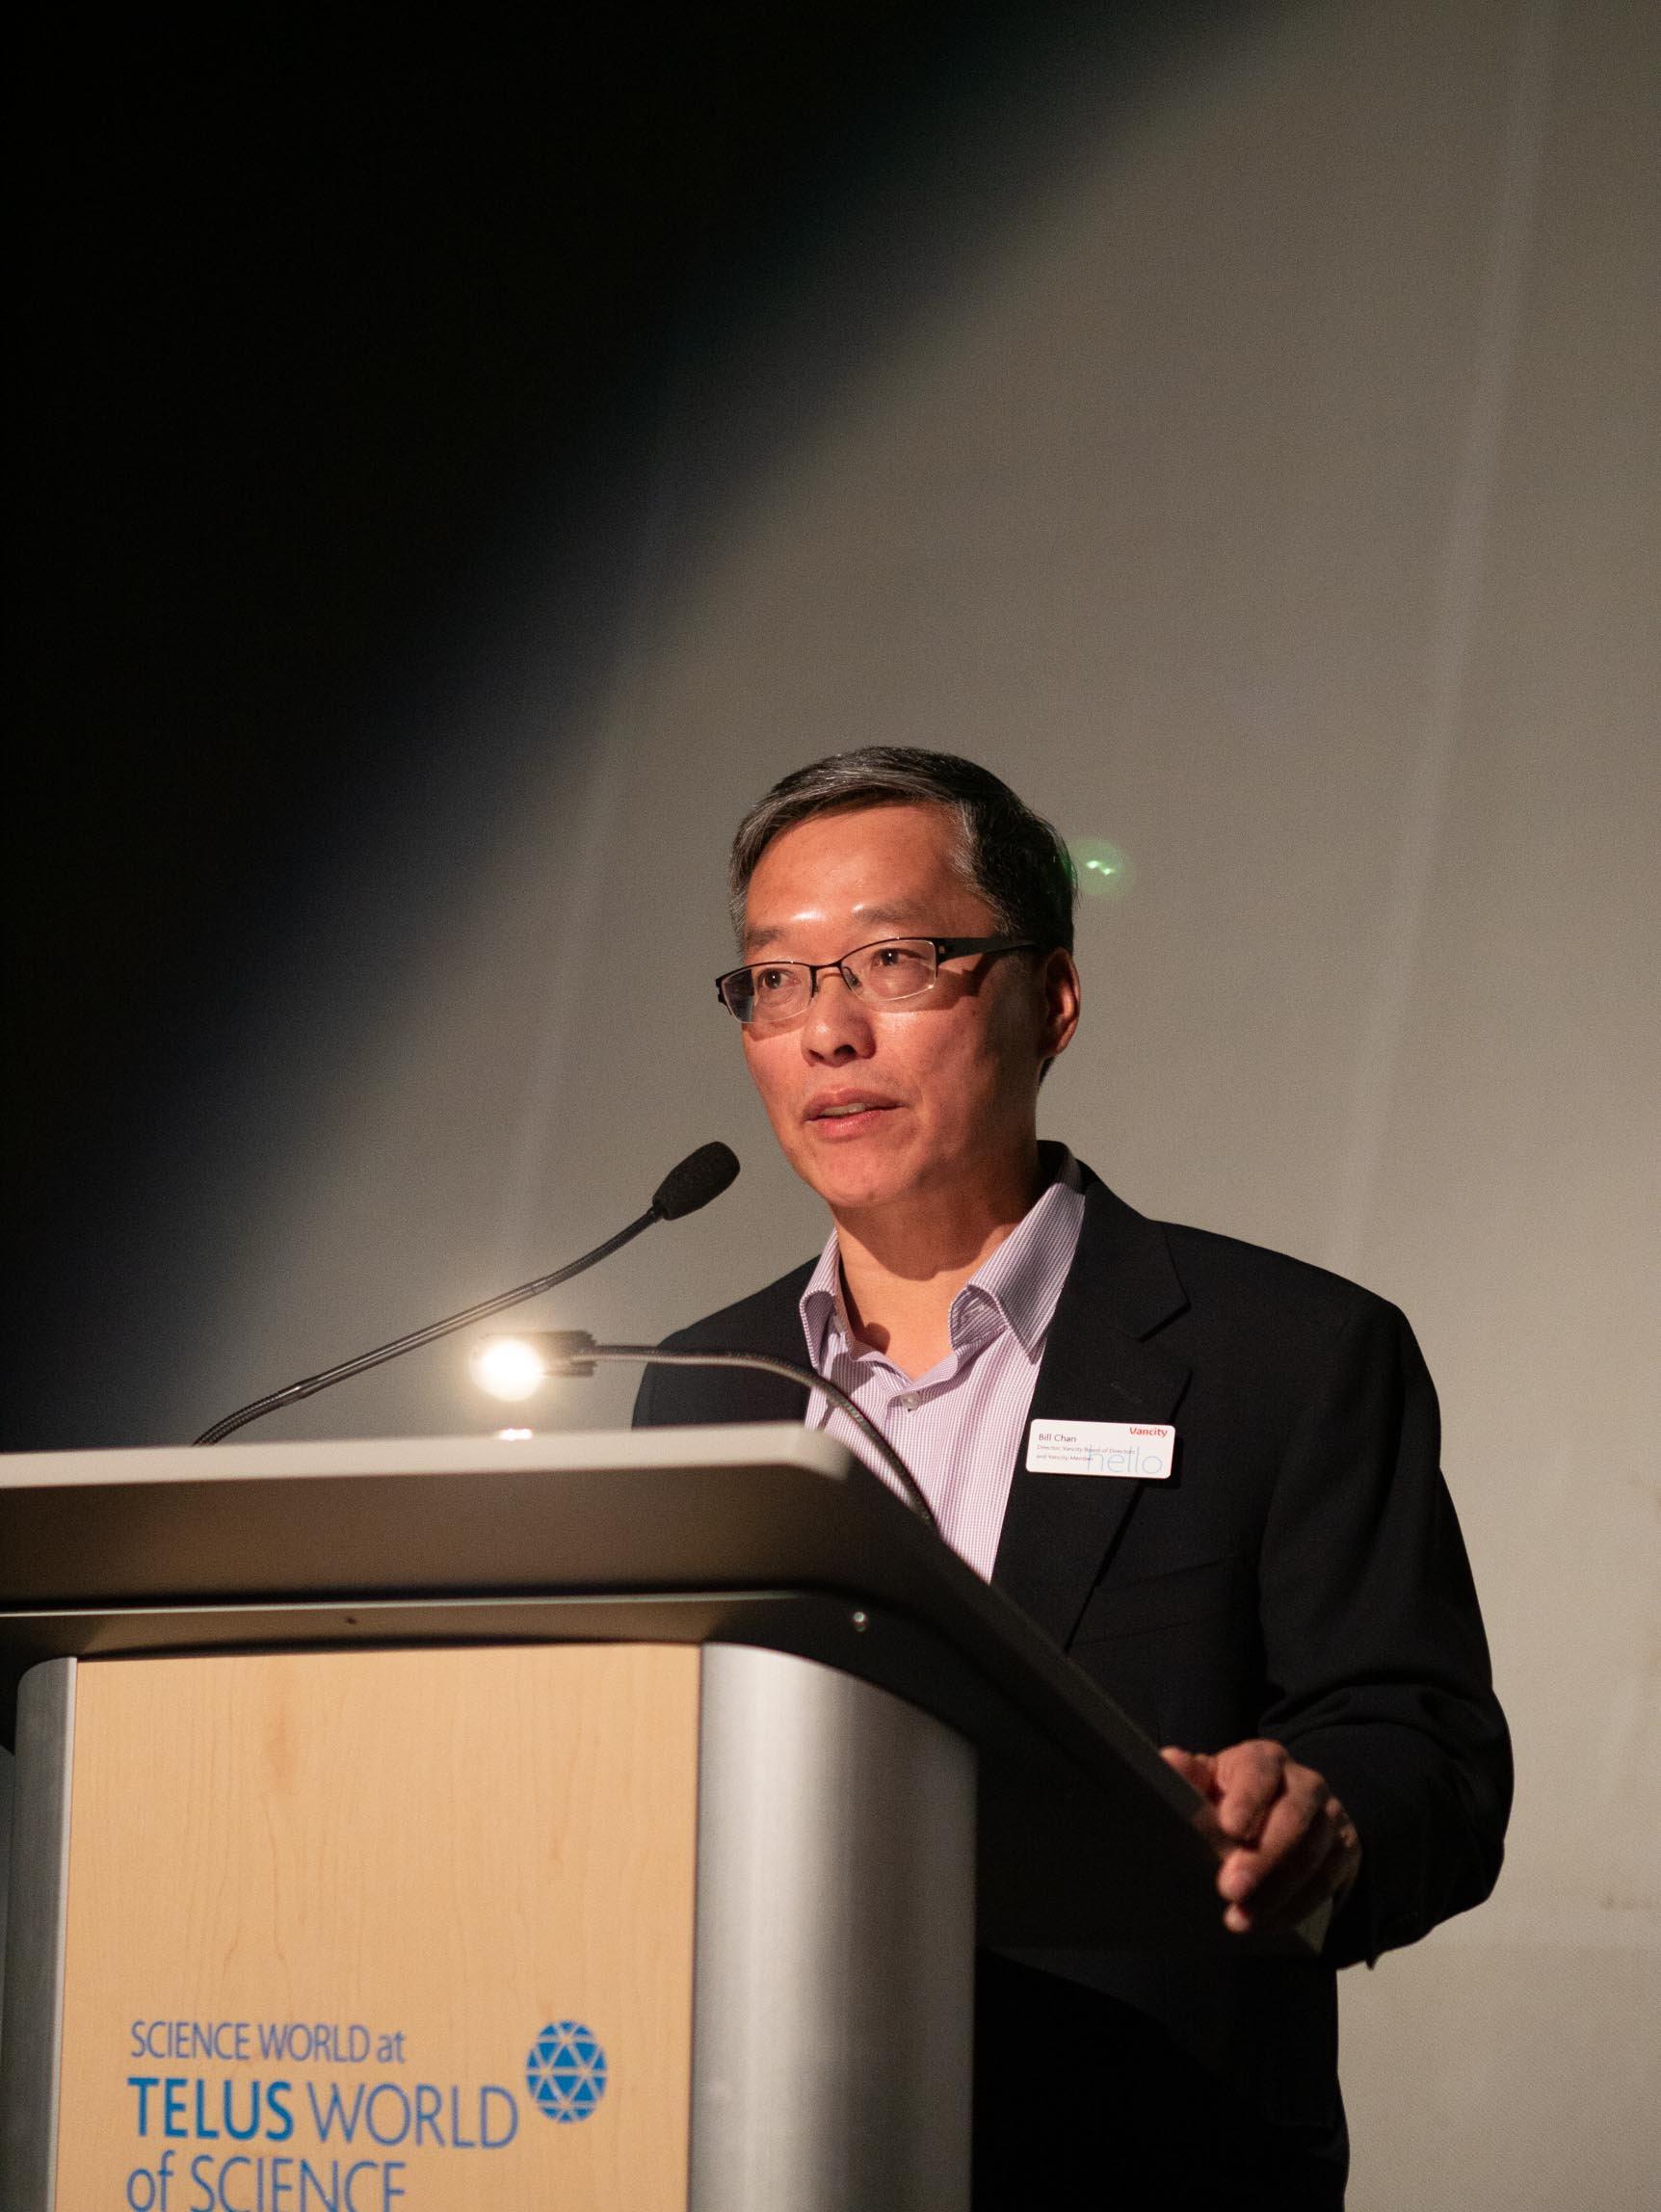 bill chan on stage Elements2019_web-194 (1).jpg